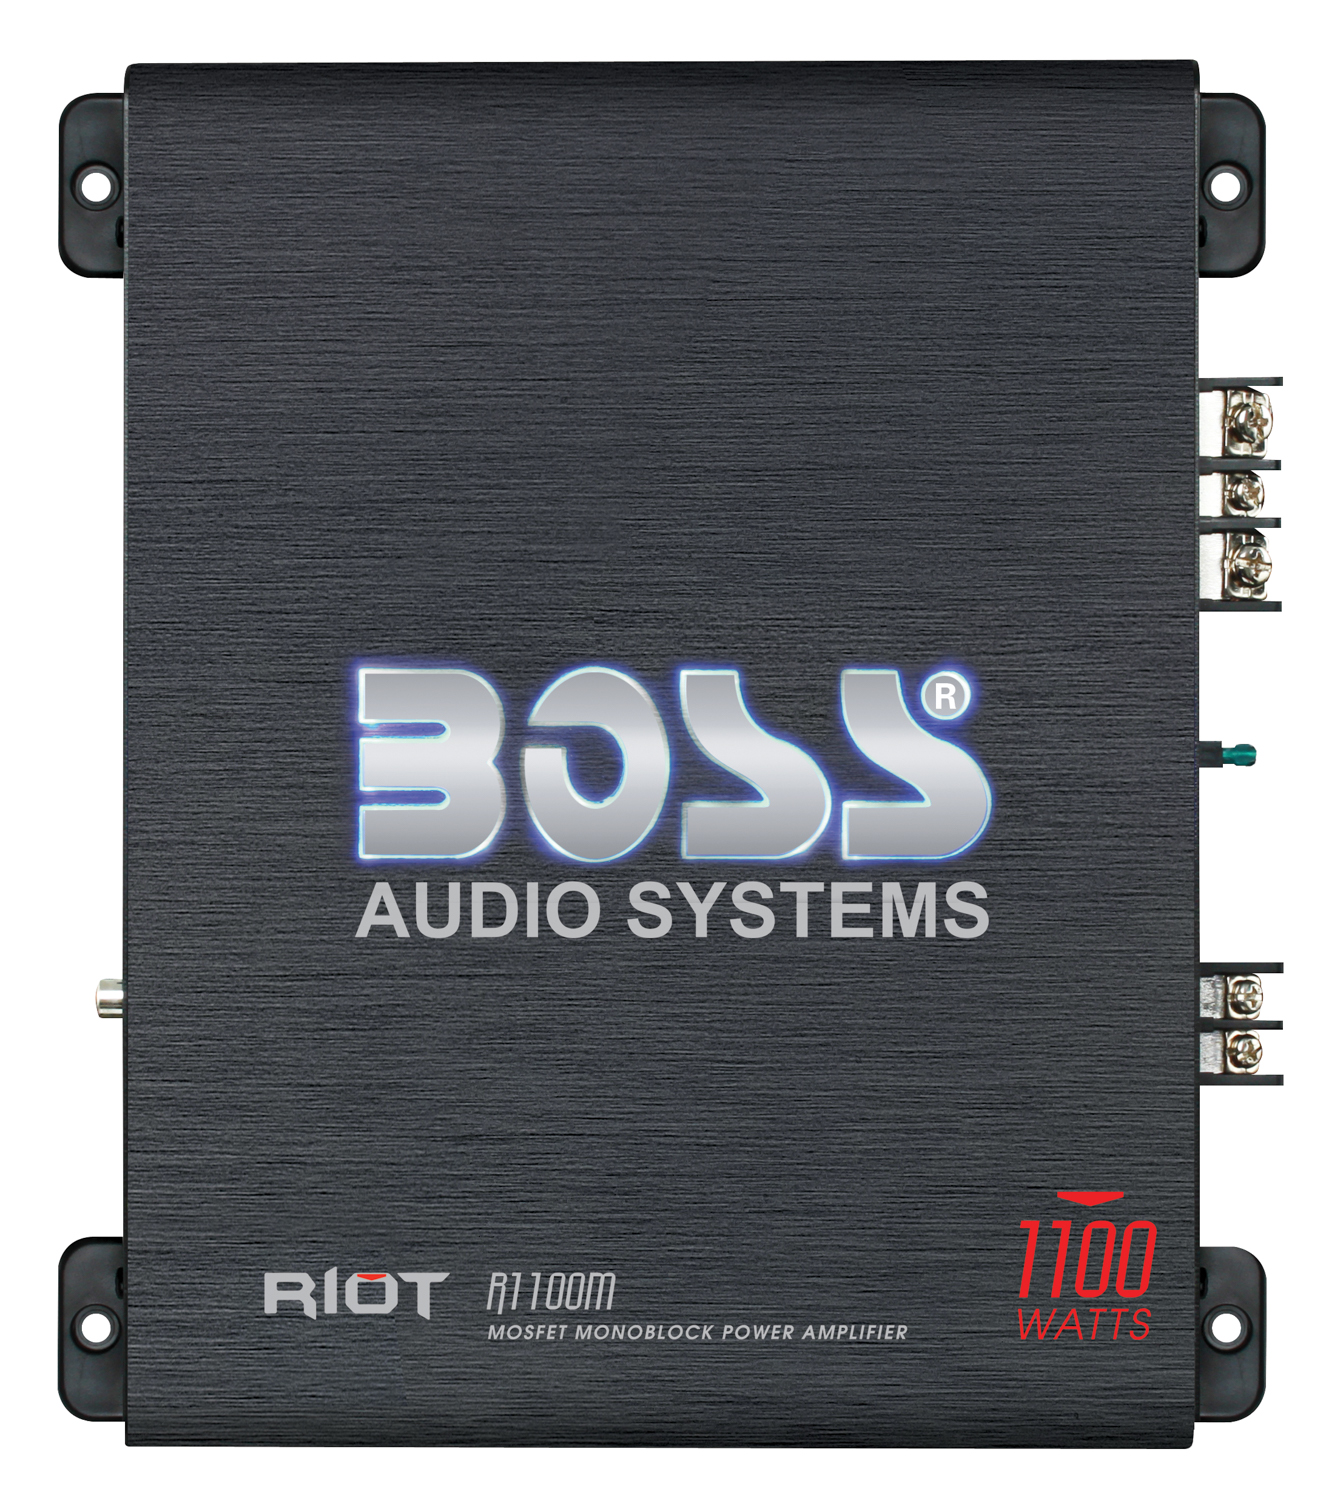 R1100M | BOSS Audio Systems, a Leading Audio & Video BrandBoss Audio